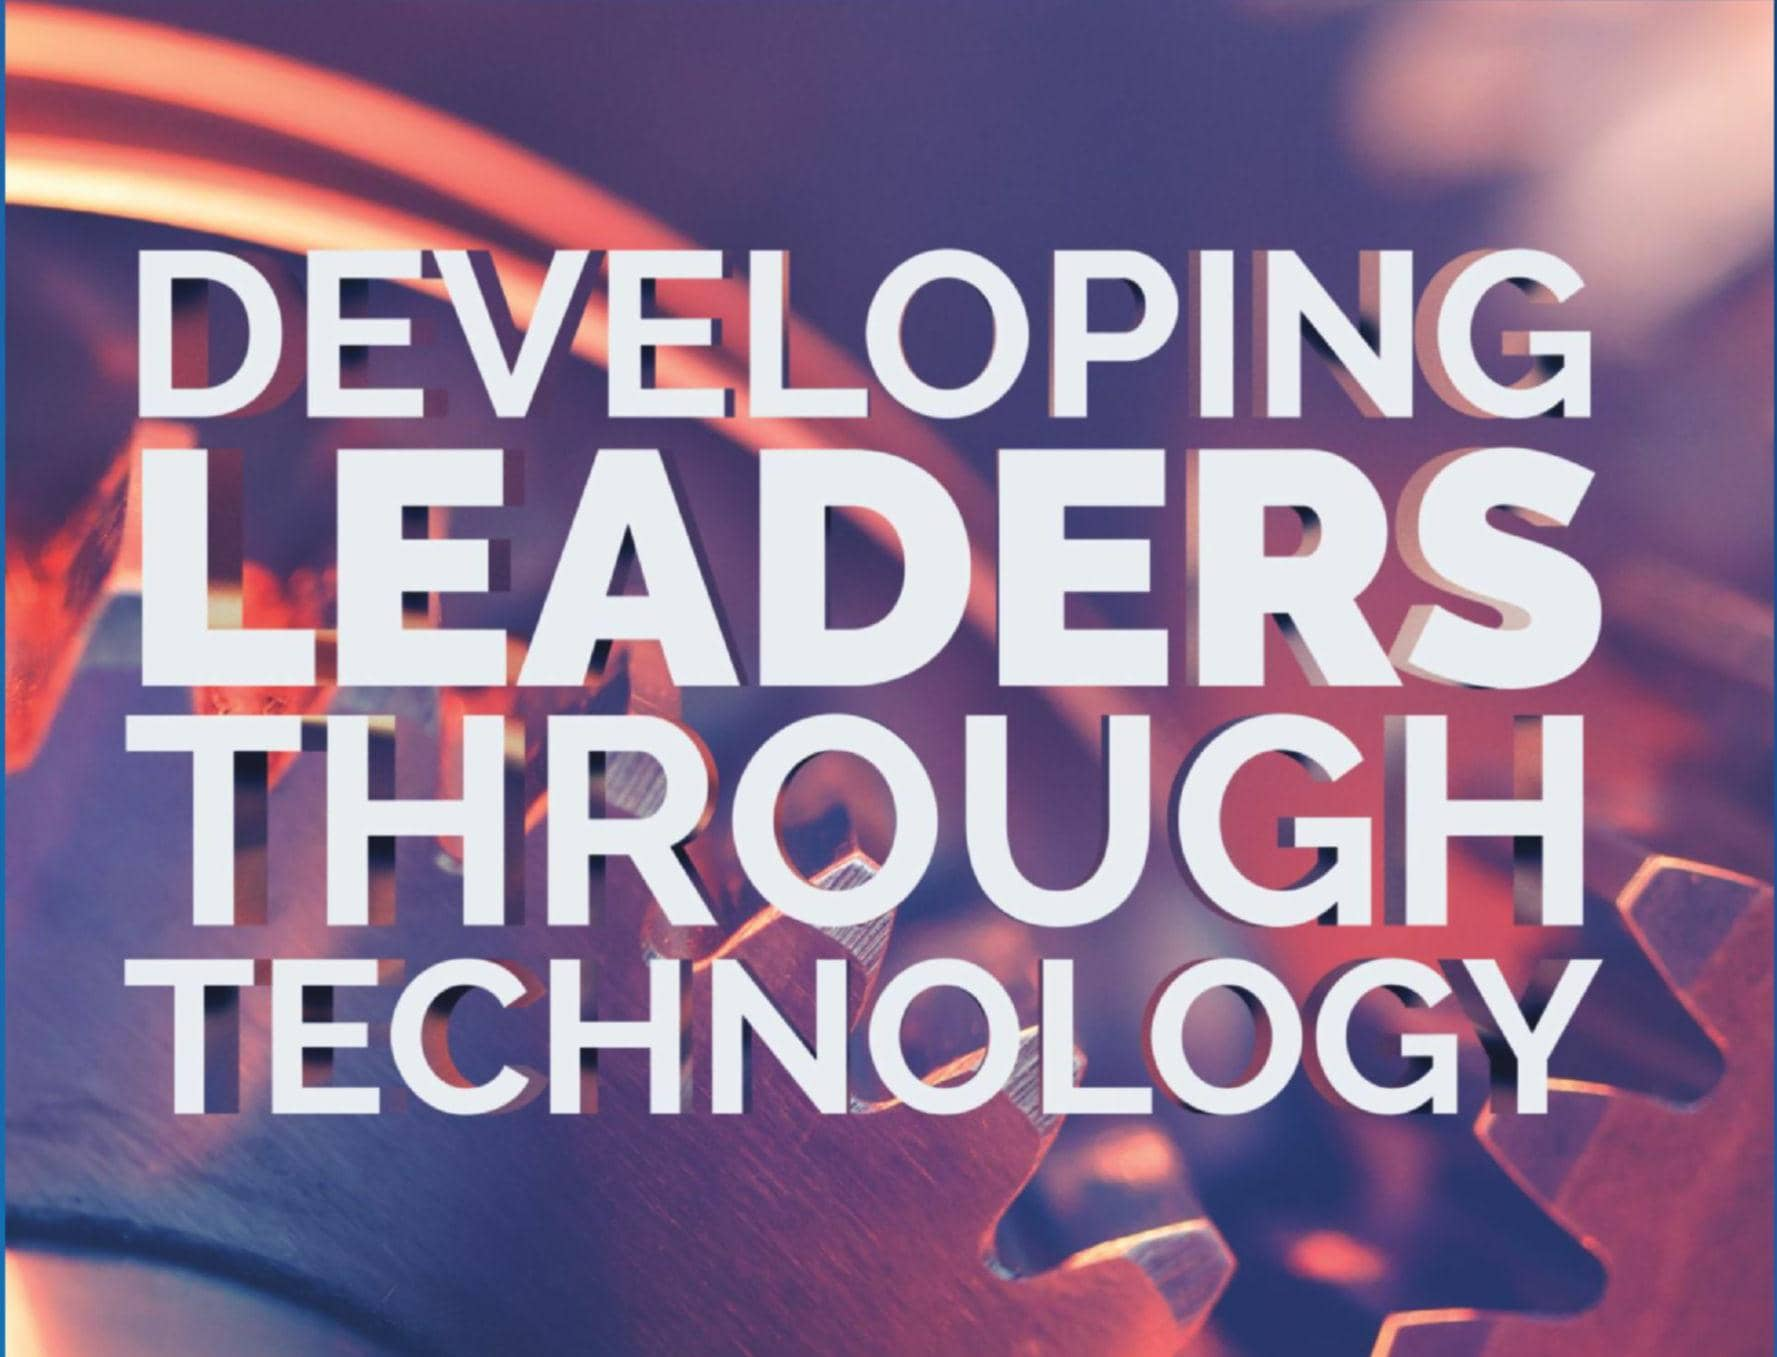 DEVELOPING LEADERS THROUGH TECHNOLOGY